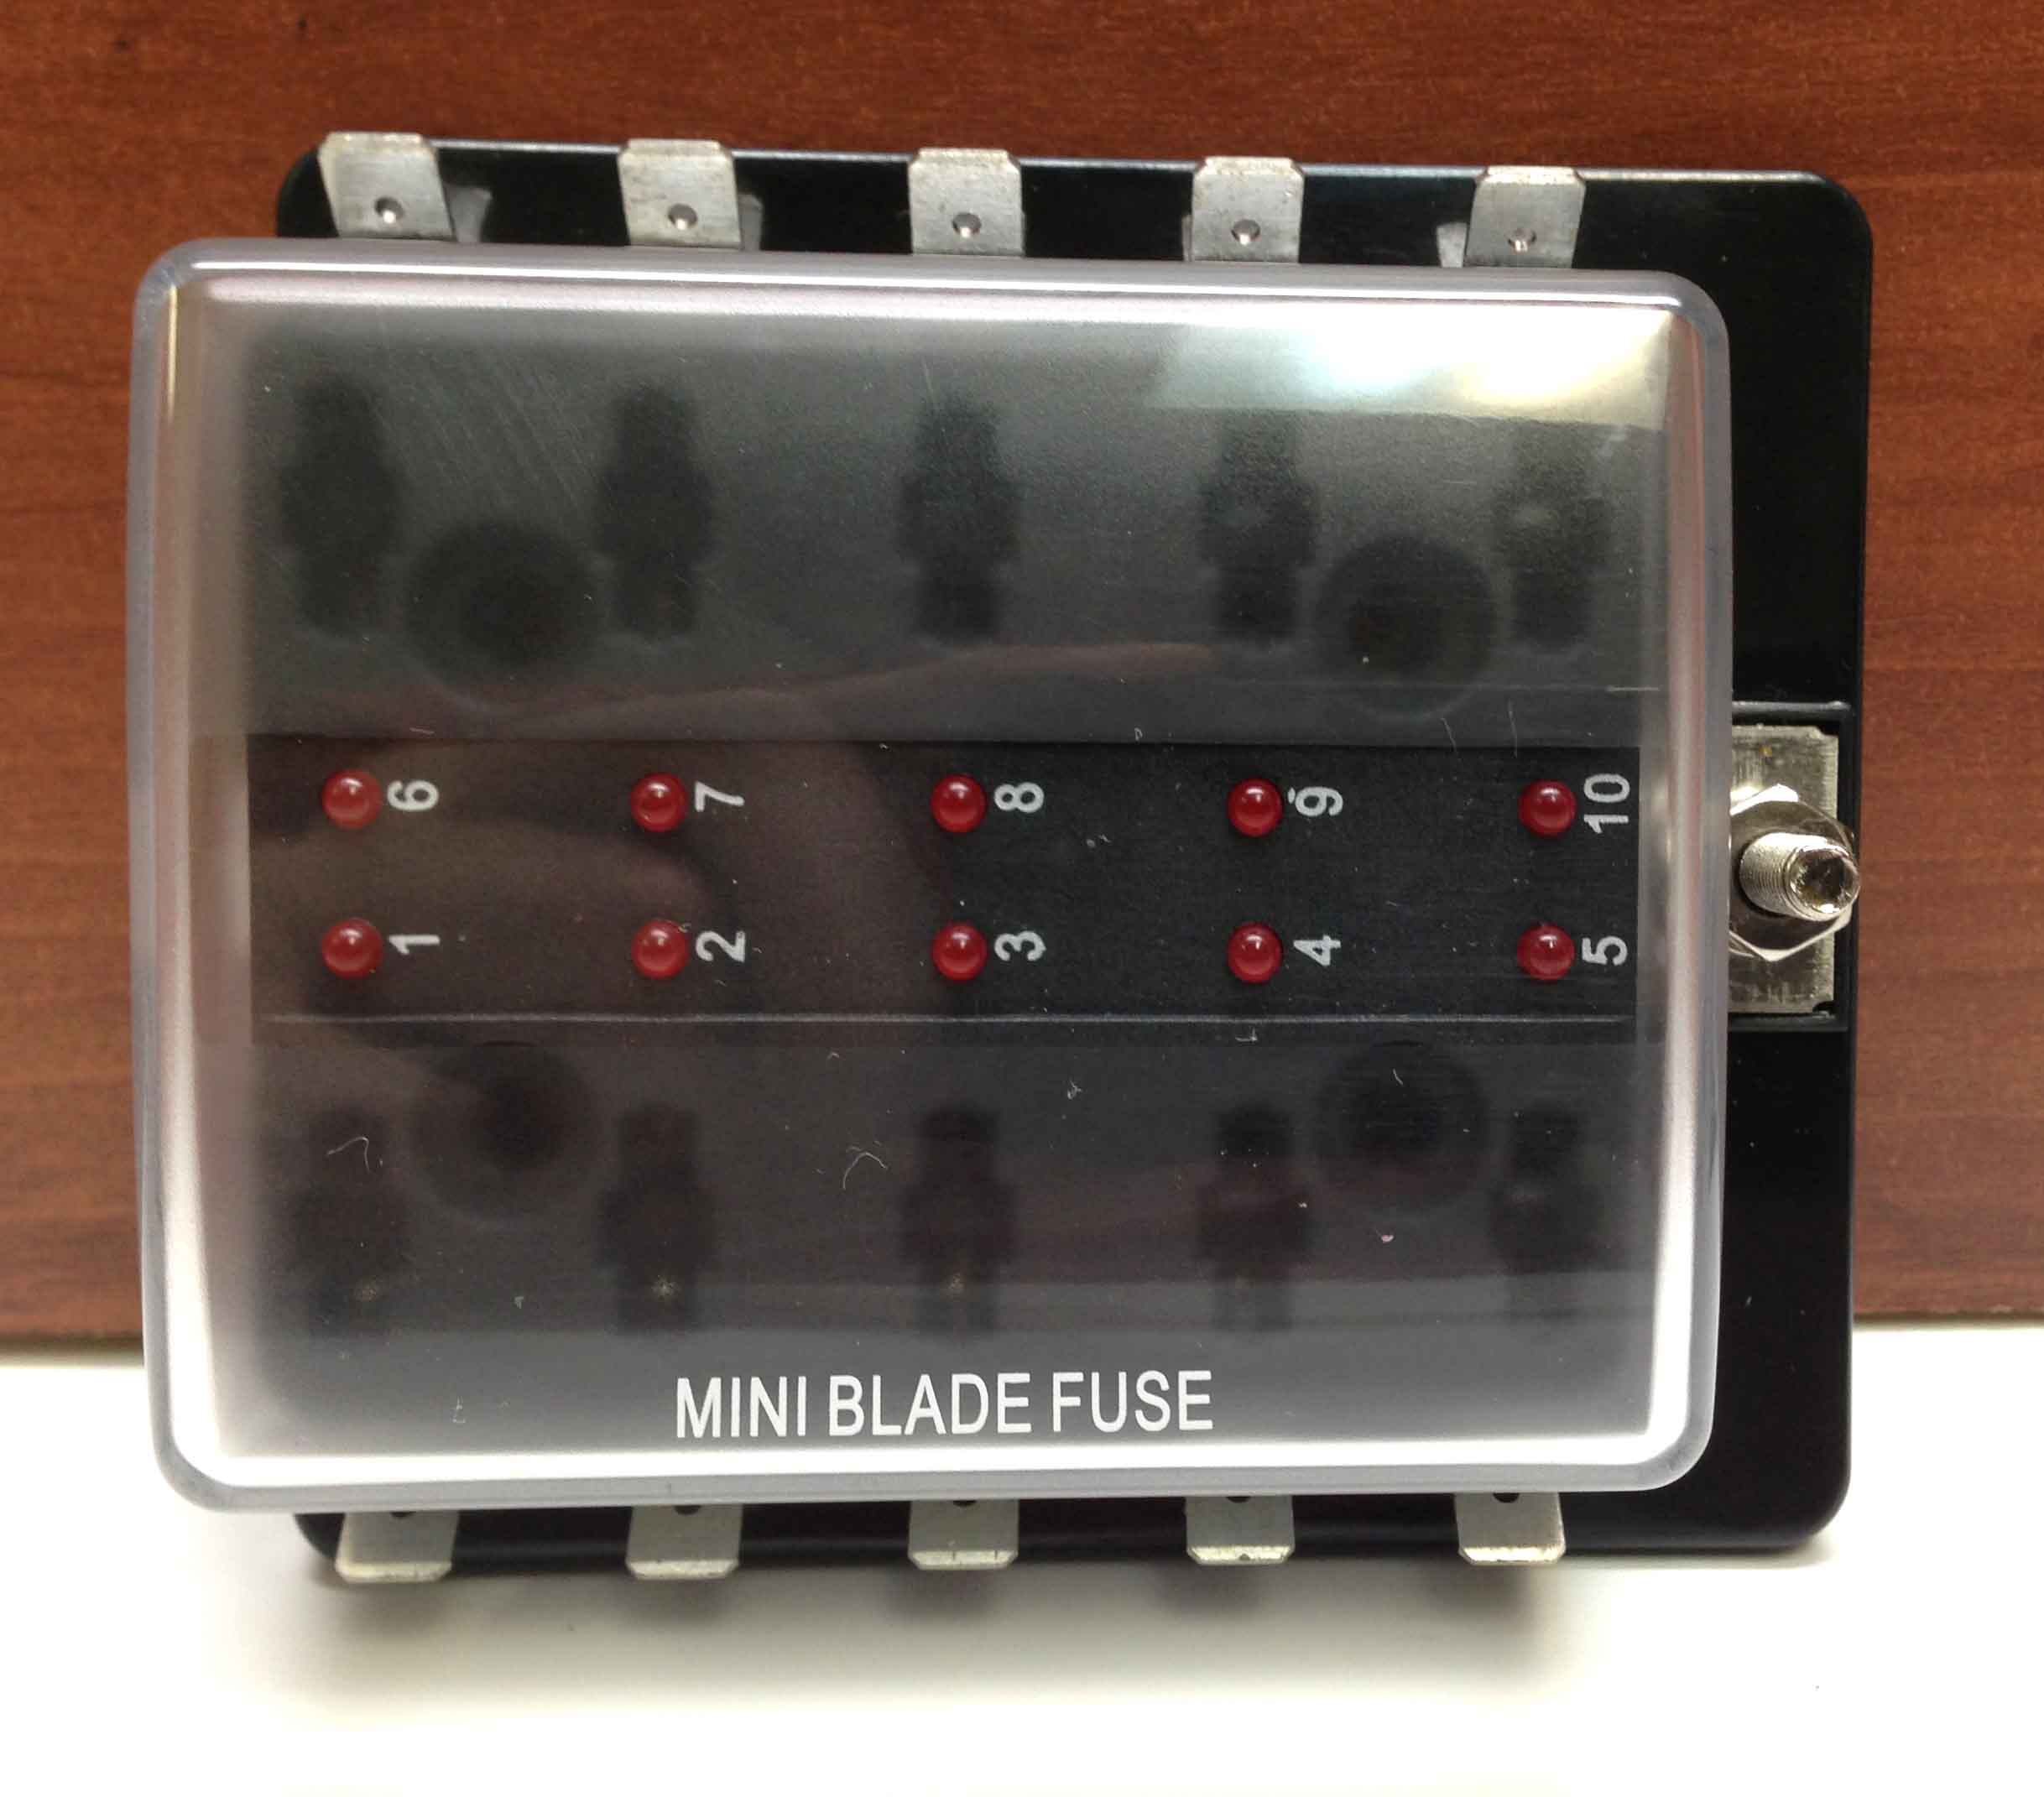 MINI BLADE FUSE BLOCK HOLDER LED INDICATOR MARINE BOAT 10 GANG U